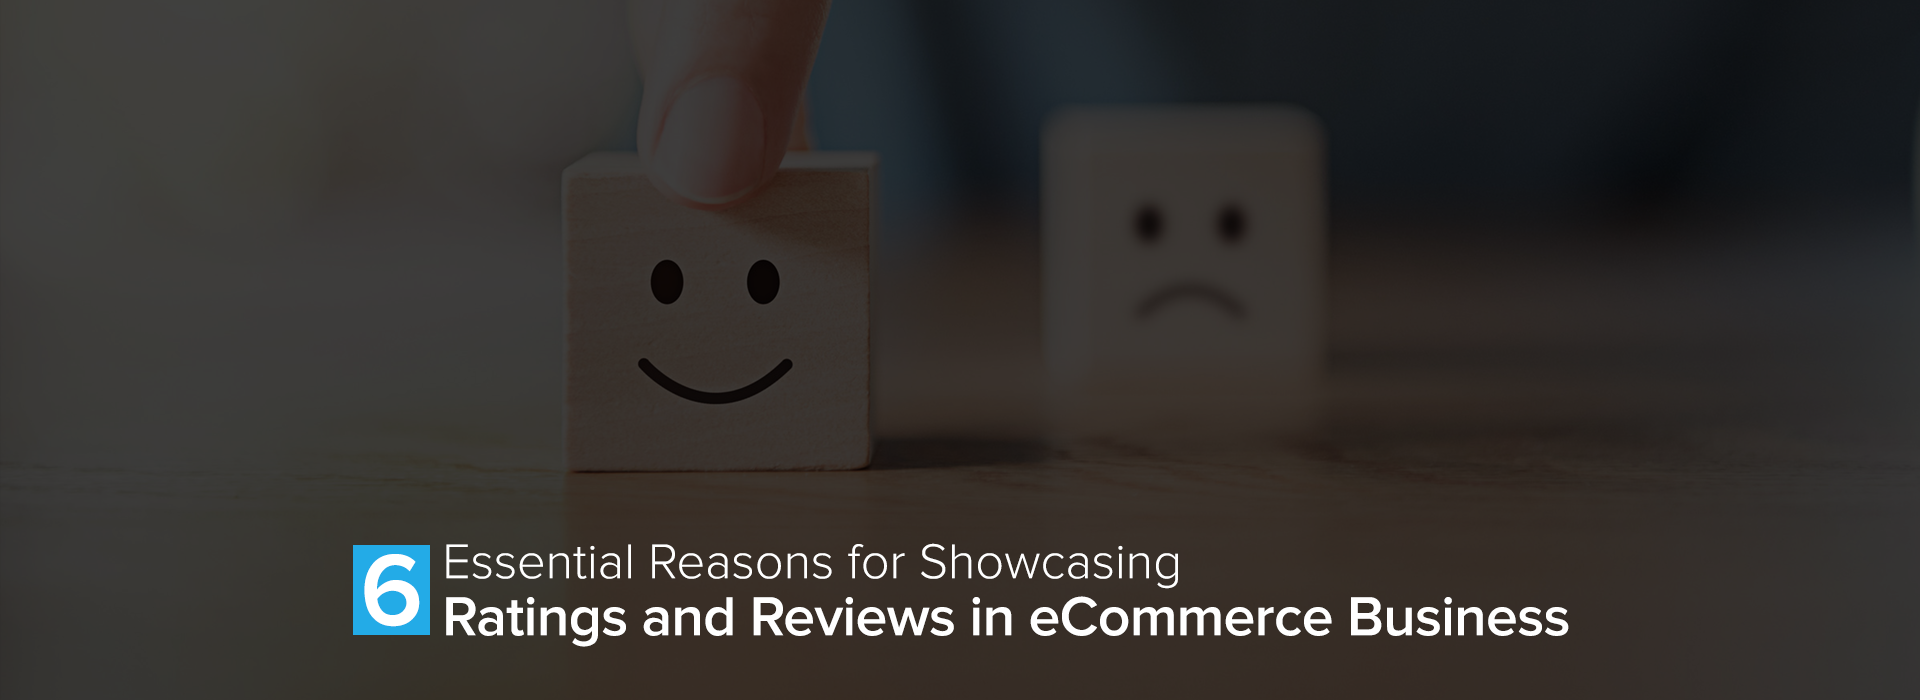 6-Essential-Reasons-for-Showcasing-Ratings-and-Reviews-in-eCommerce-Business (1)